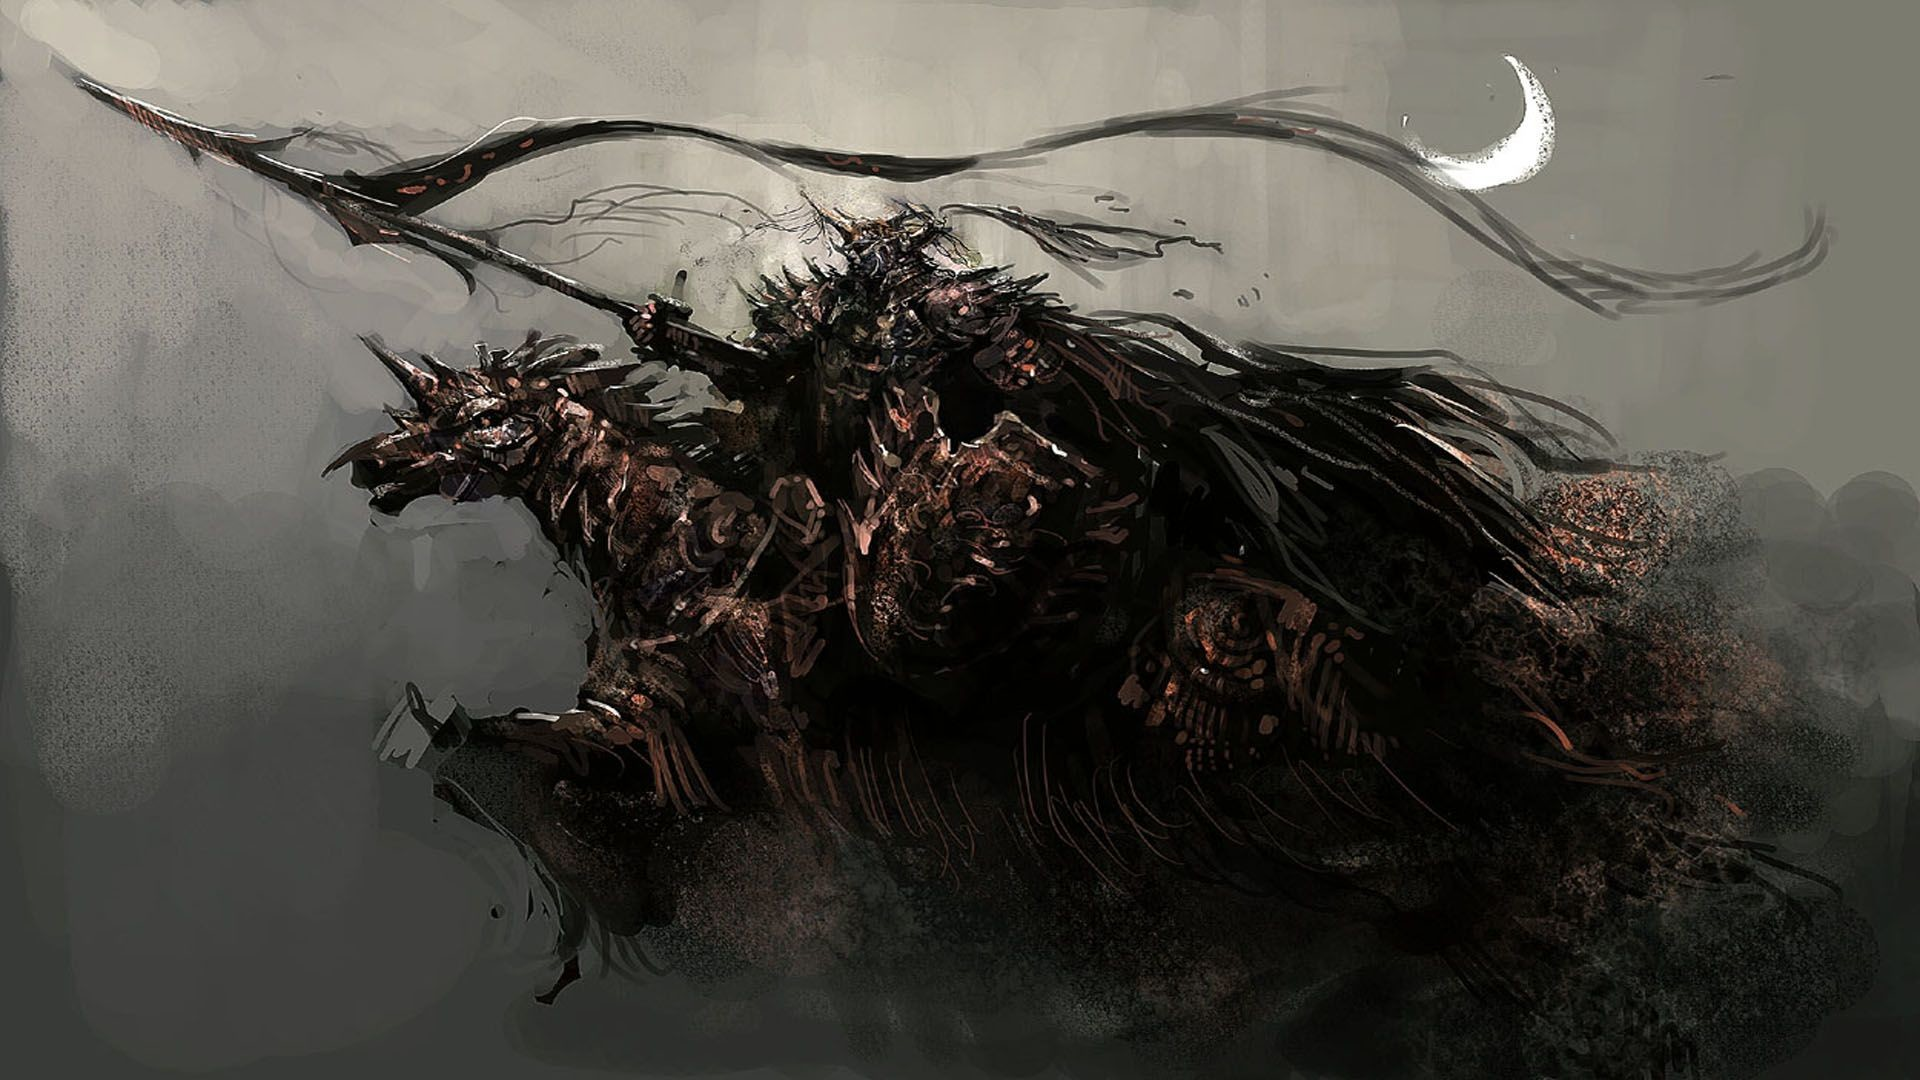 1920x1080 Demon Wallpaper High Definition Dodskypict Source A Wallpapers Background